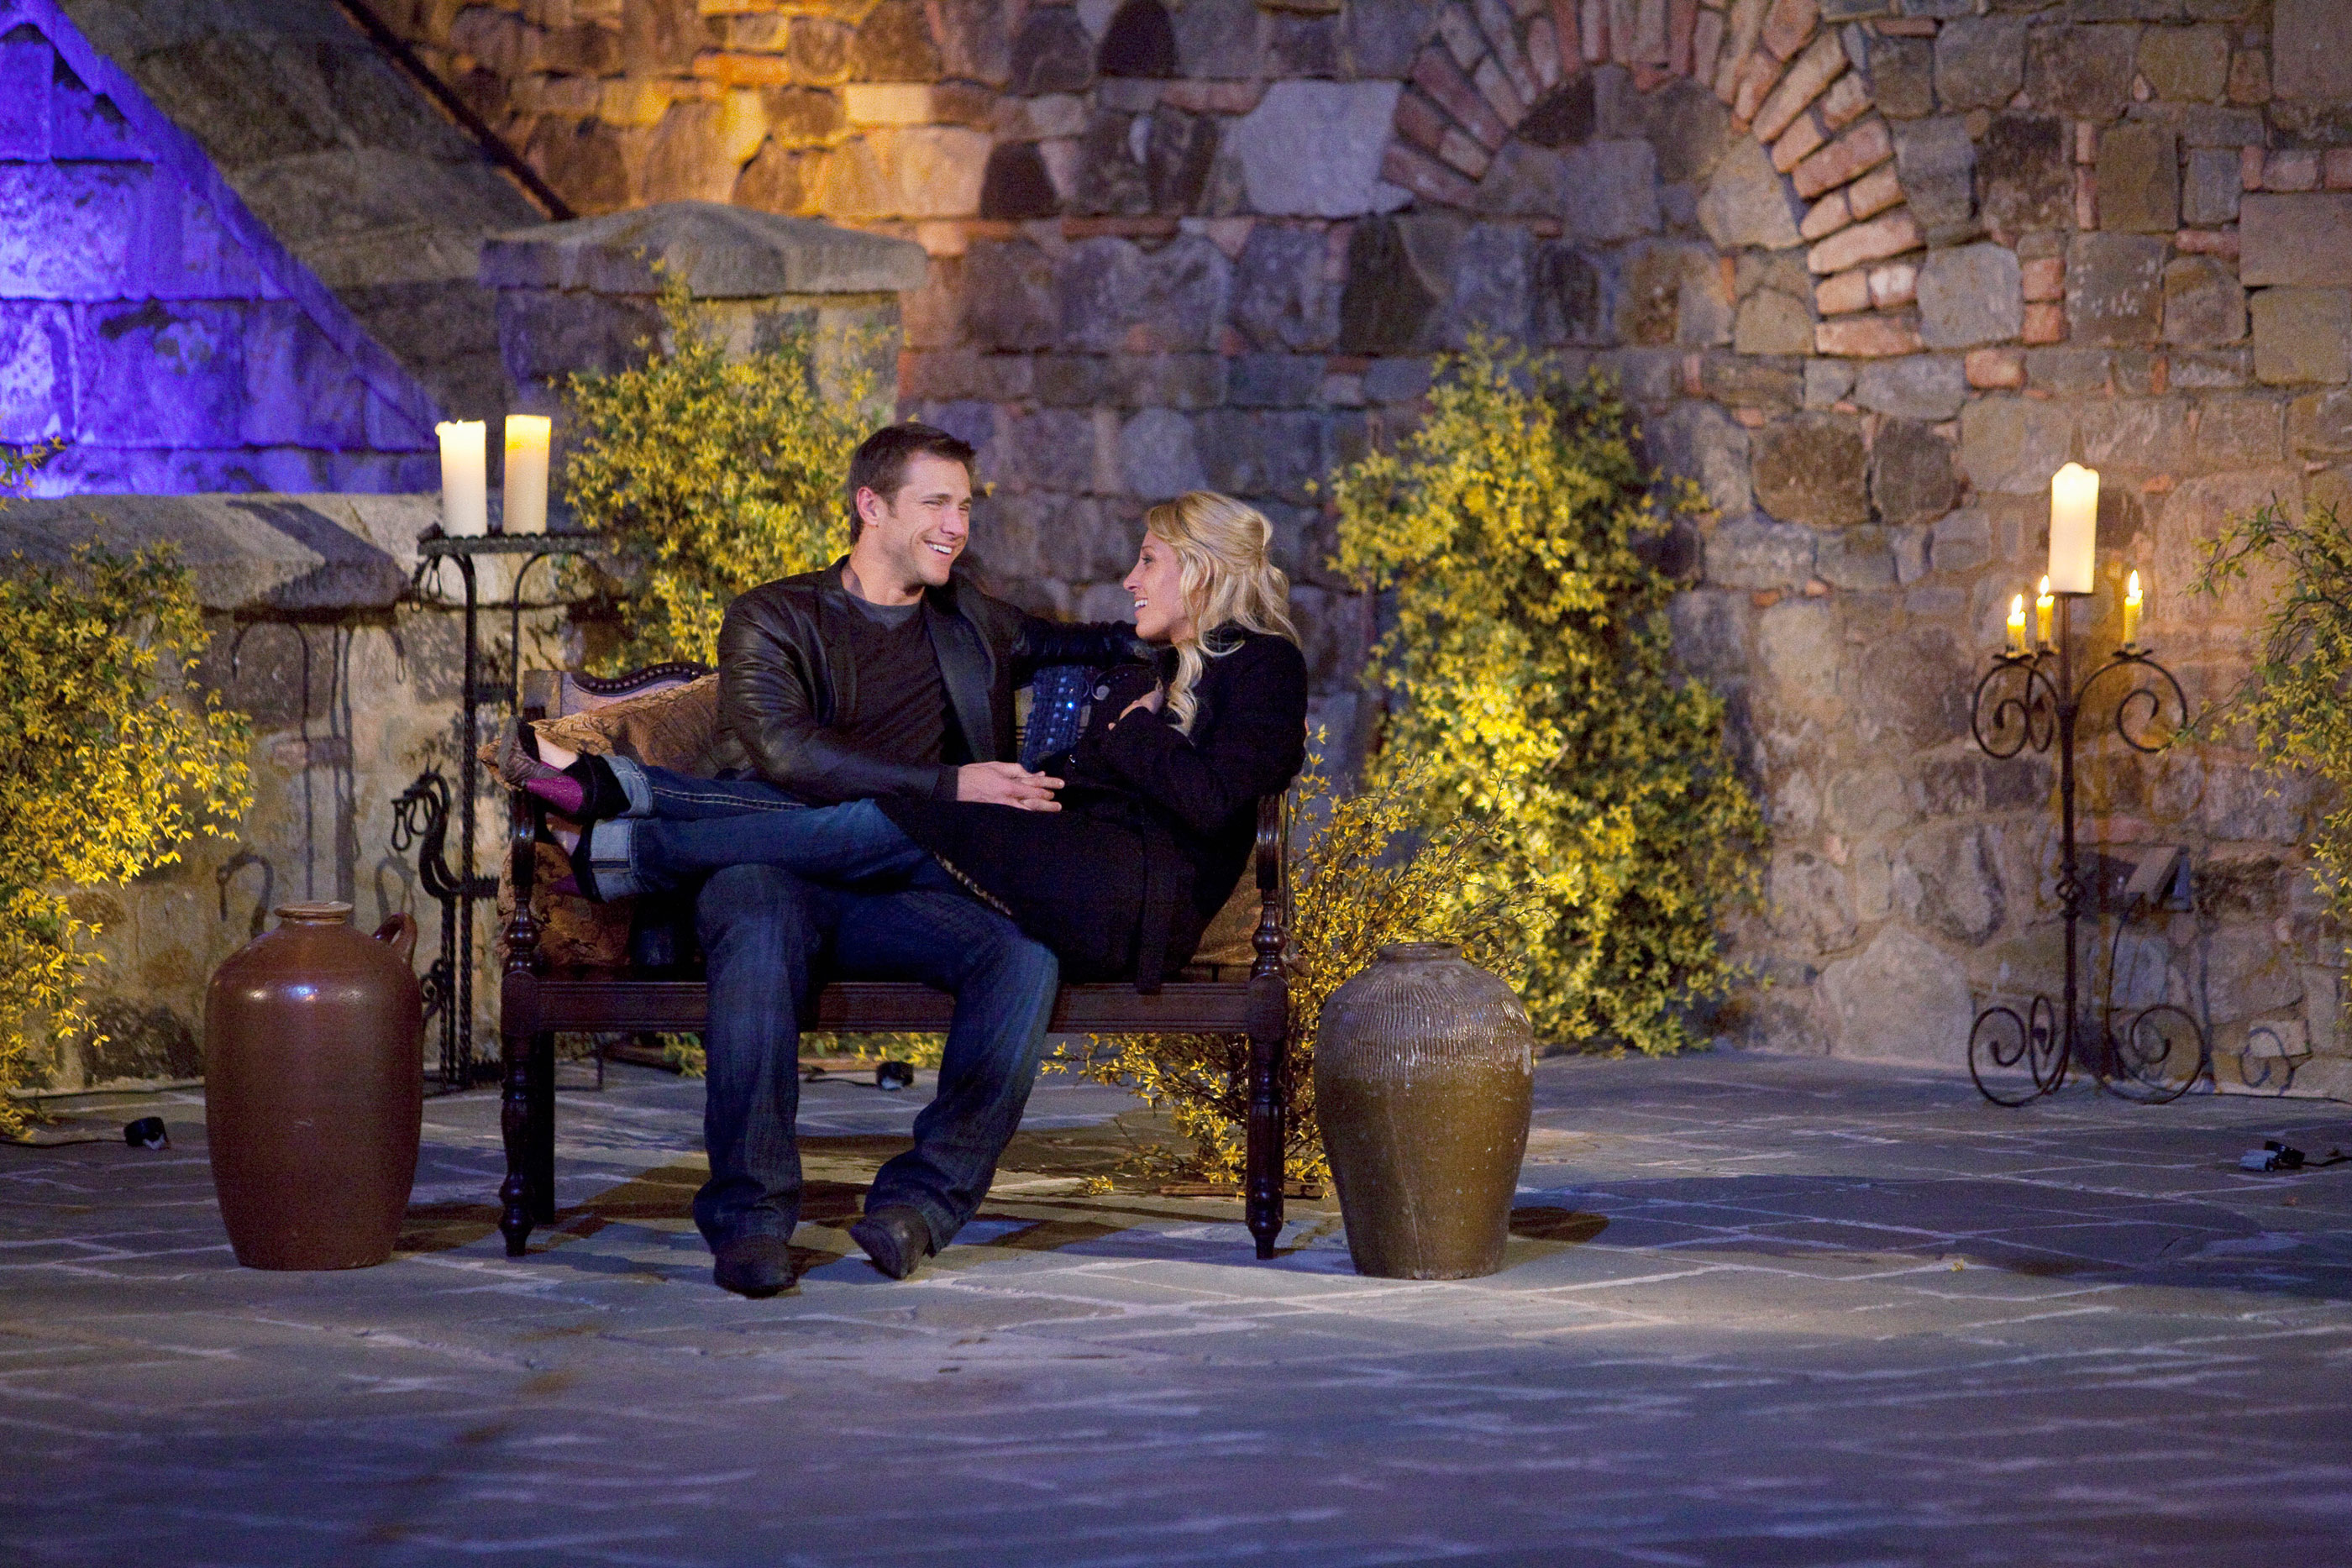 "THE BACHELOR: ON THE WINGS OF LOVE - ""Episode 1405"" - The pressure was really on, as Jake struggled to decide which four women he would escort home to meet their families. But first, the five remaining bachelorettes ended their adventurous road trip in the romantic city of San Francisco. On the two-on-one date, one bachelorette had no problem dominating the dinner conversation. With the beautiful Castello di Amorosa winery in Napa Valley as a backdrop, the romance between Jake and one of the women intensified. But the other bachelorette wasn't about to see another woman get between her and her man. When the trio headed off to their respective bedrooms in the castle, Jake got a late night surprise visit, on ""The Bachelor: On the Wings of Love,"" MONDAY, FEBRUARY 1 (8:00-10:00 p.m., ET), on the ABC Television Network."